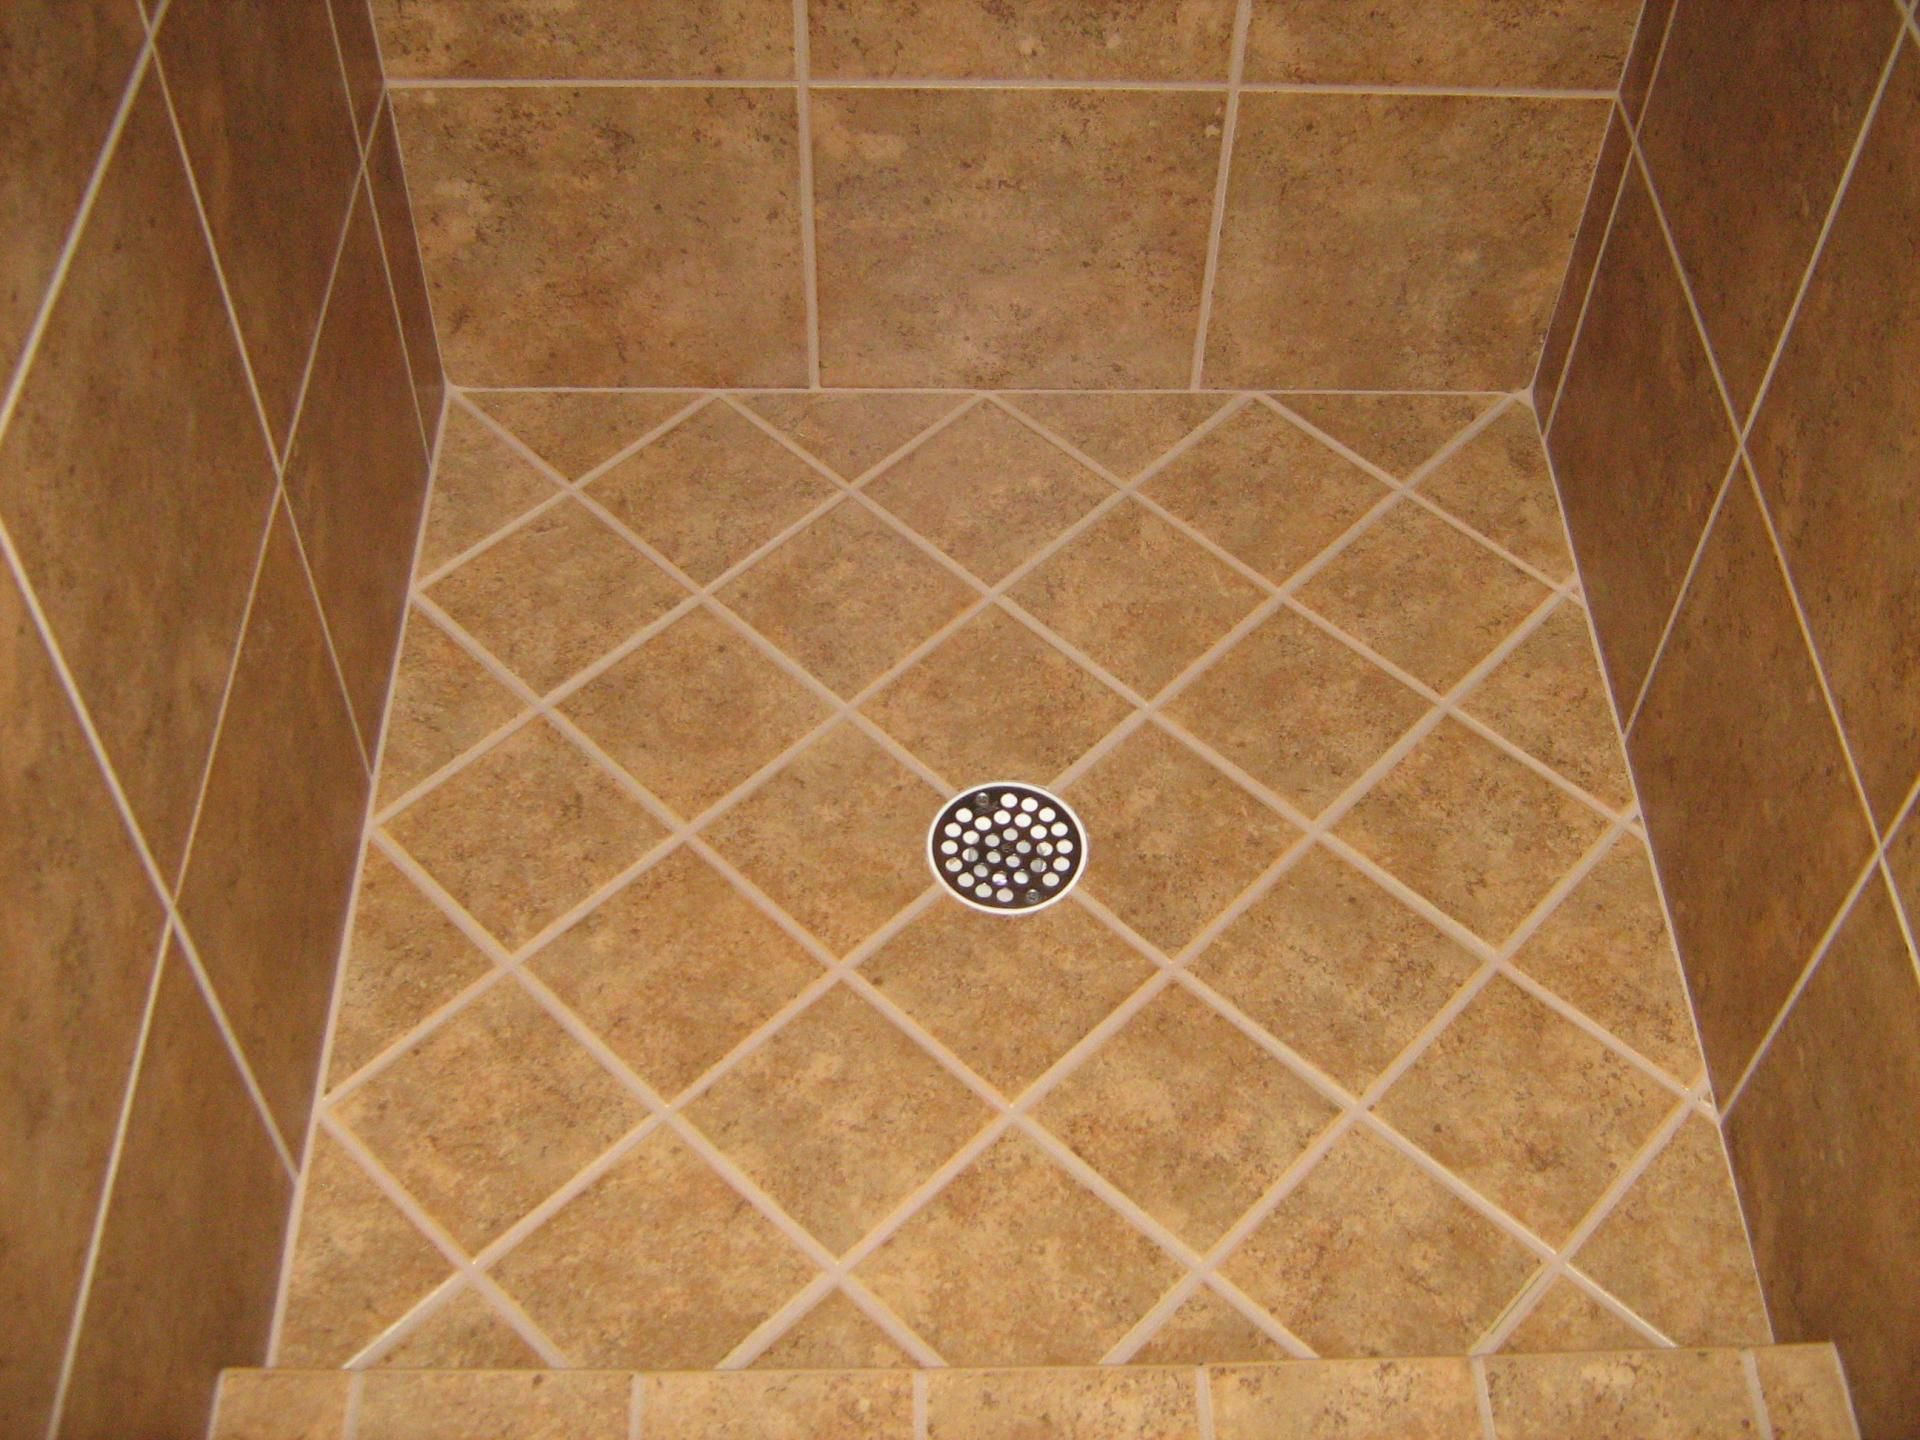 Stand up shower designs shower tile in small stand for Bathroom floor tile ideas